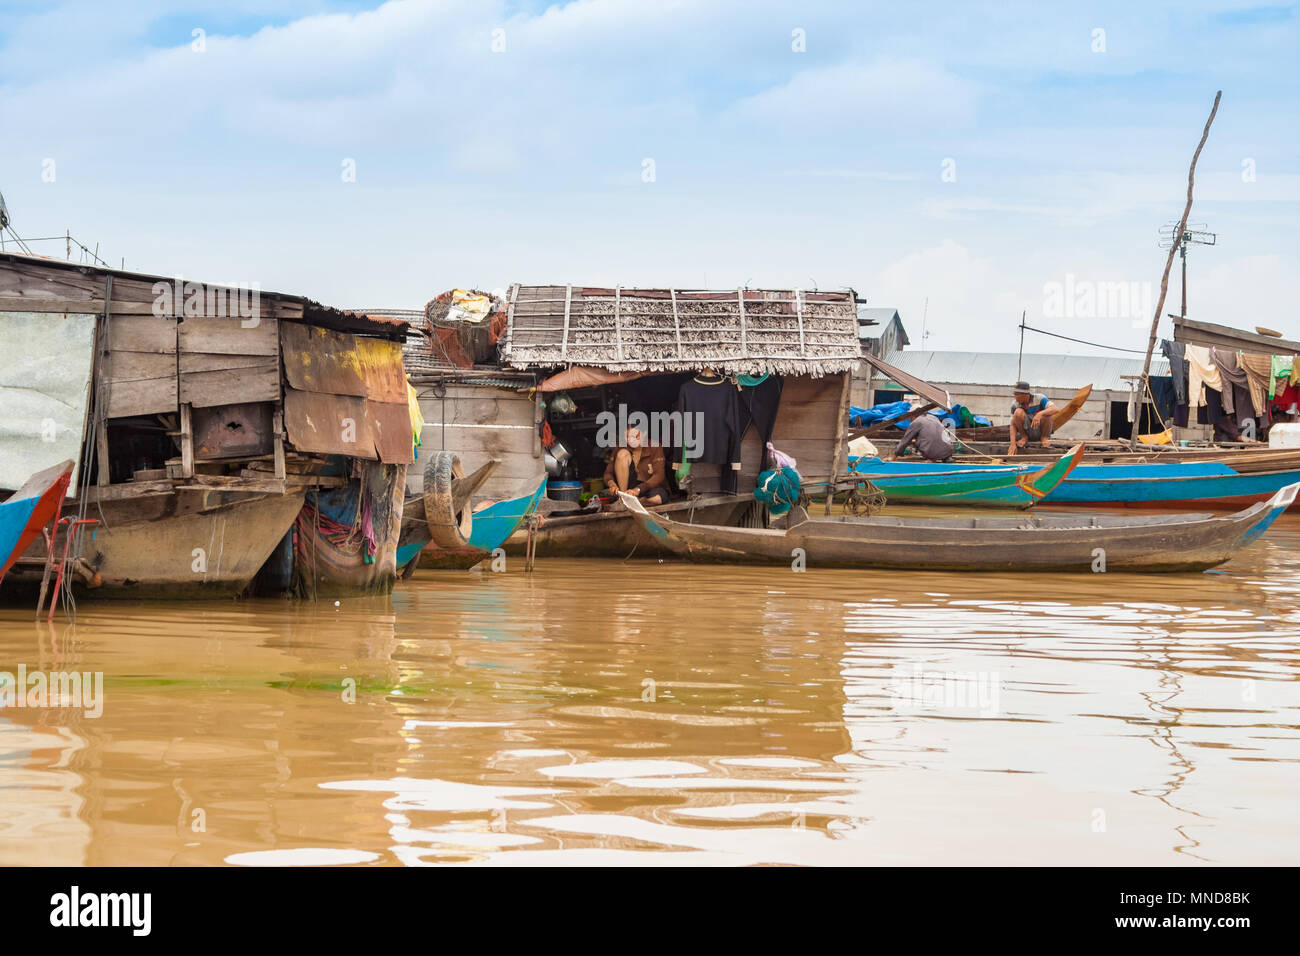 A local woman preparing something in the kitchen of a wooden houseboat with a thatched roof. Taken in May 2009 in the floating village Chong Kneas. - Stock Image